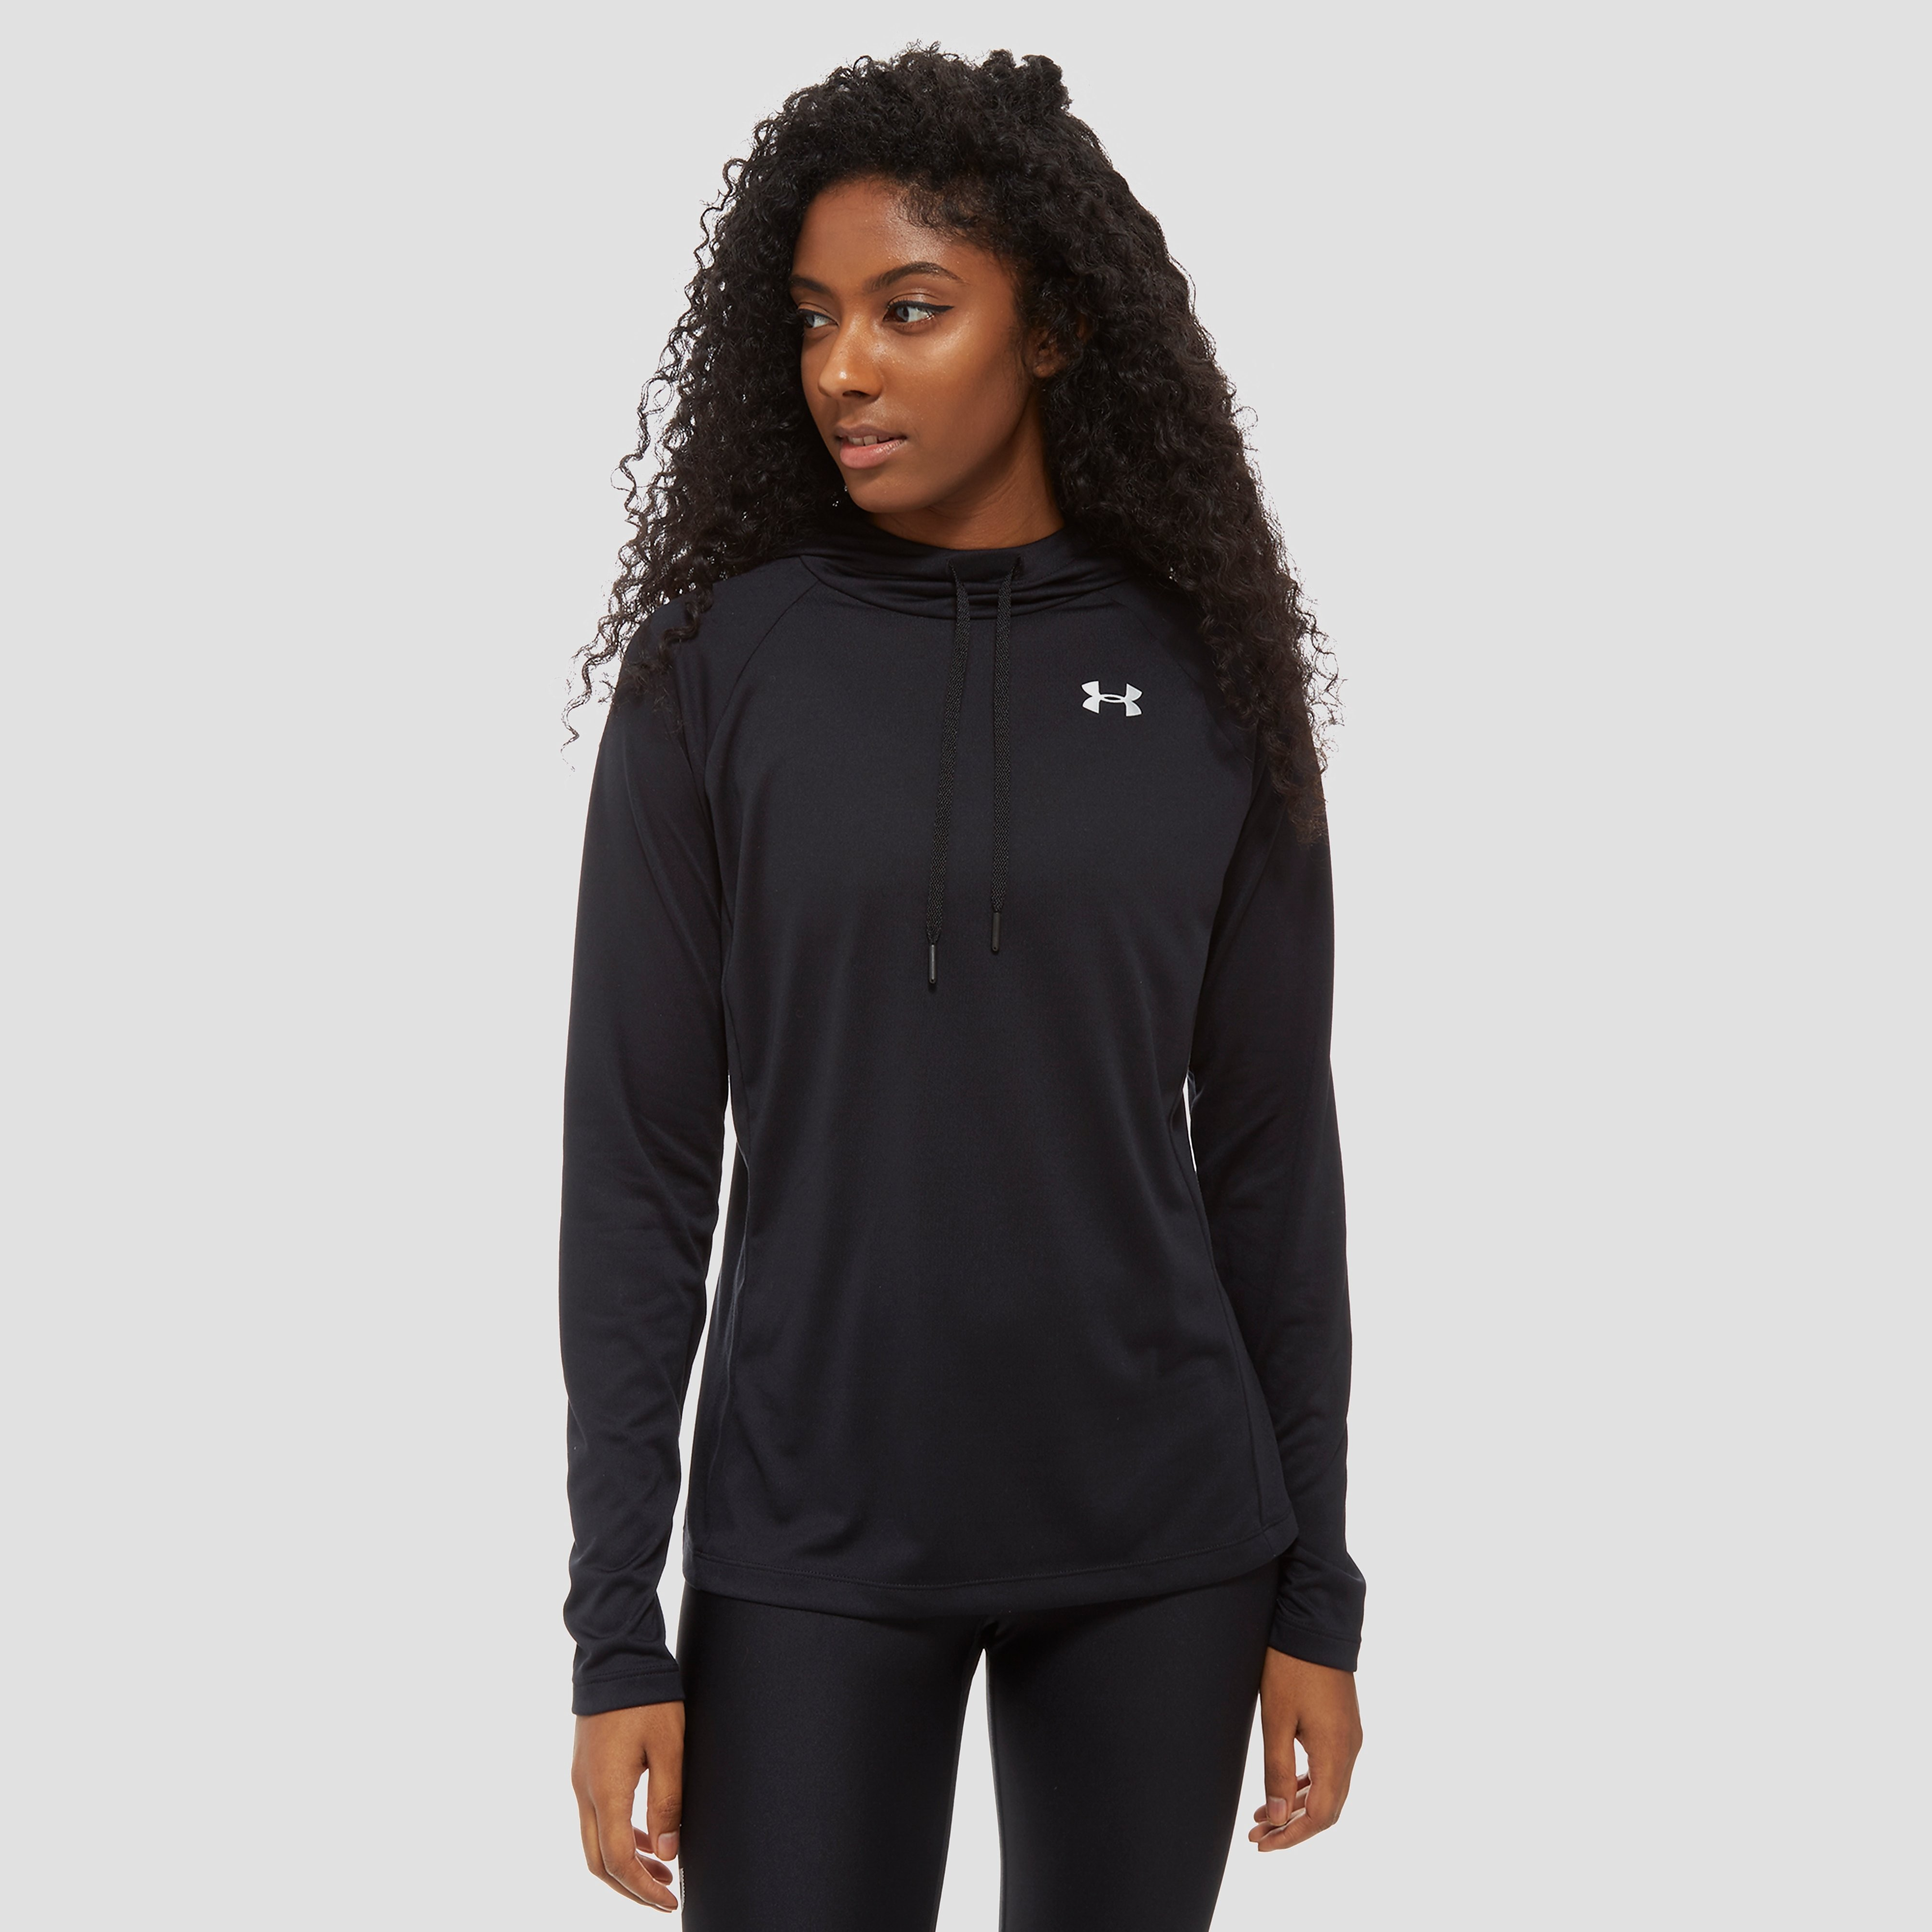 Under Armour Women's Tech Overhead Training Top